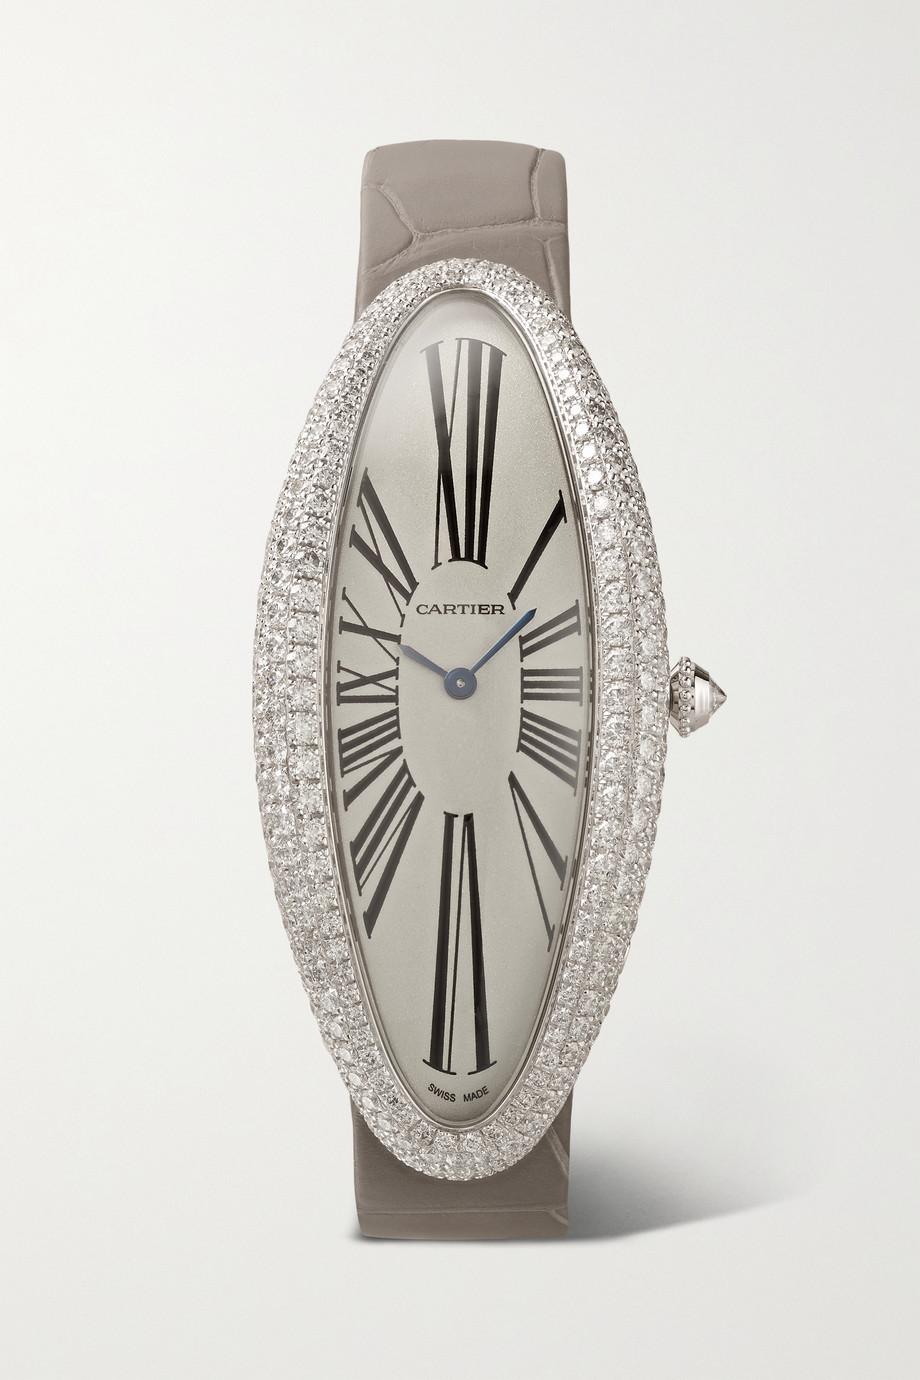 Cartier Baignoire Allongée Automatic 23mm extra large rhodium-finished 18-karat white gold, alligator and diamond watch